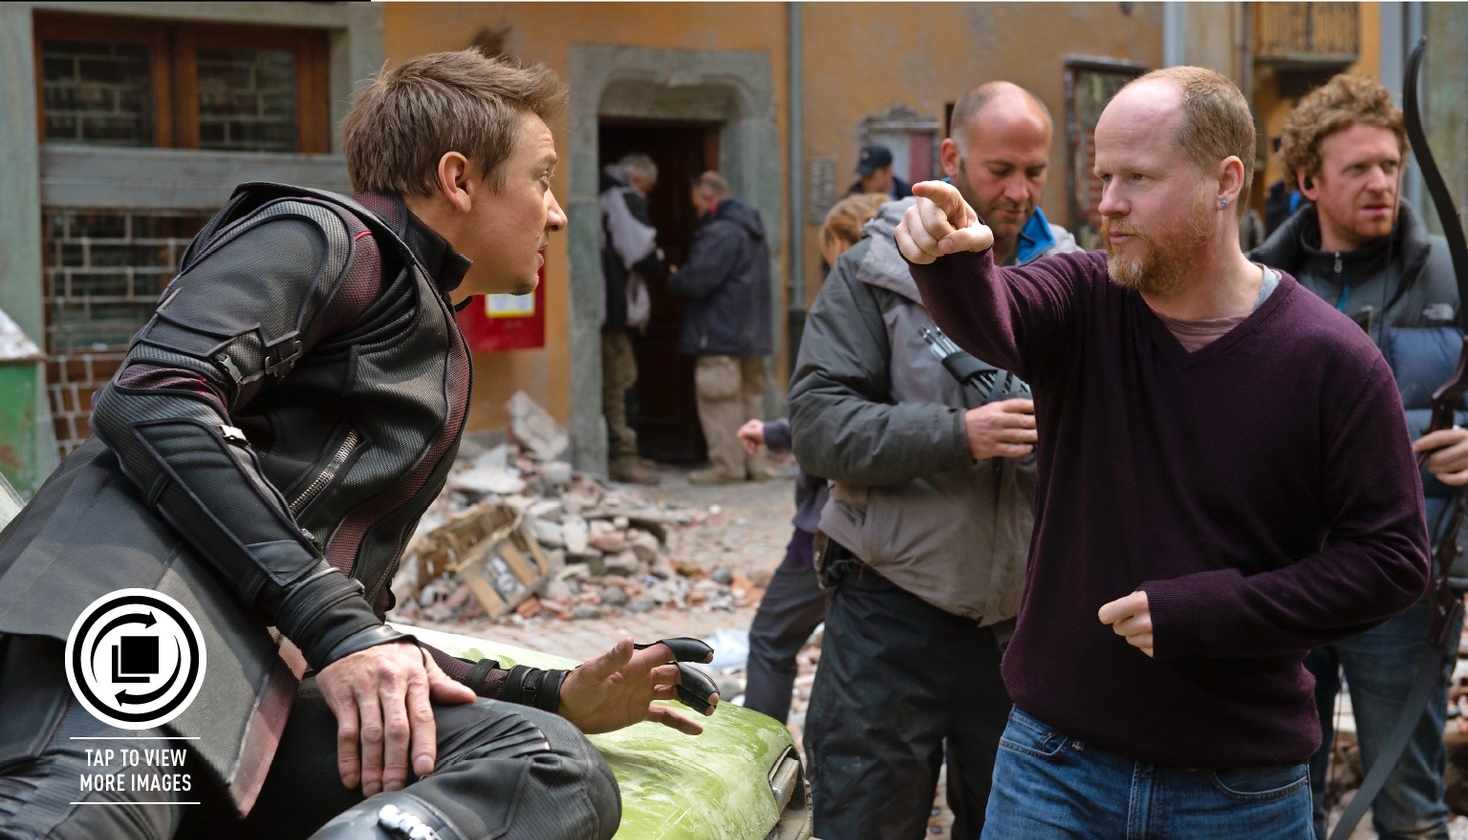 high-res-photos-from-avengers-age-of-ultron6